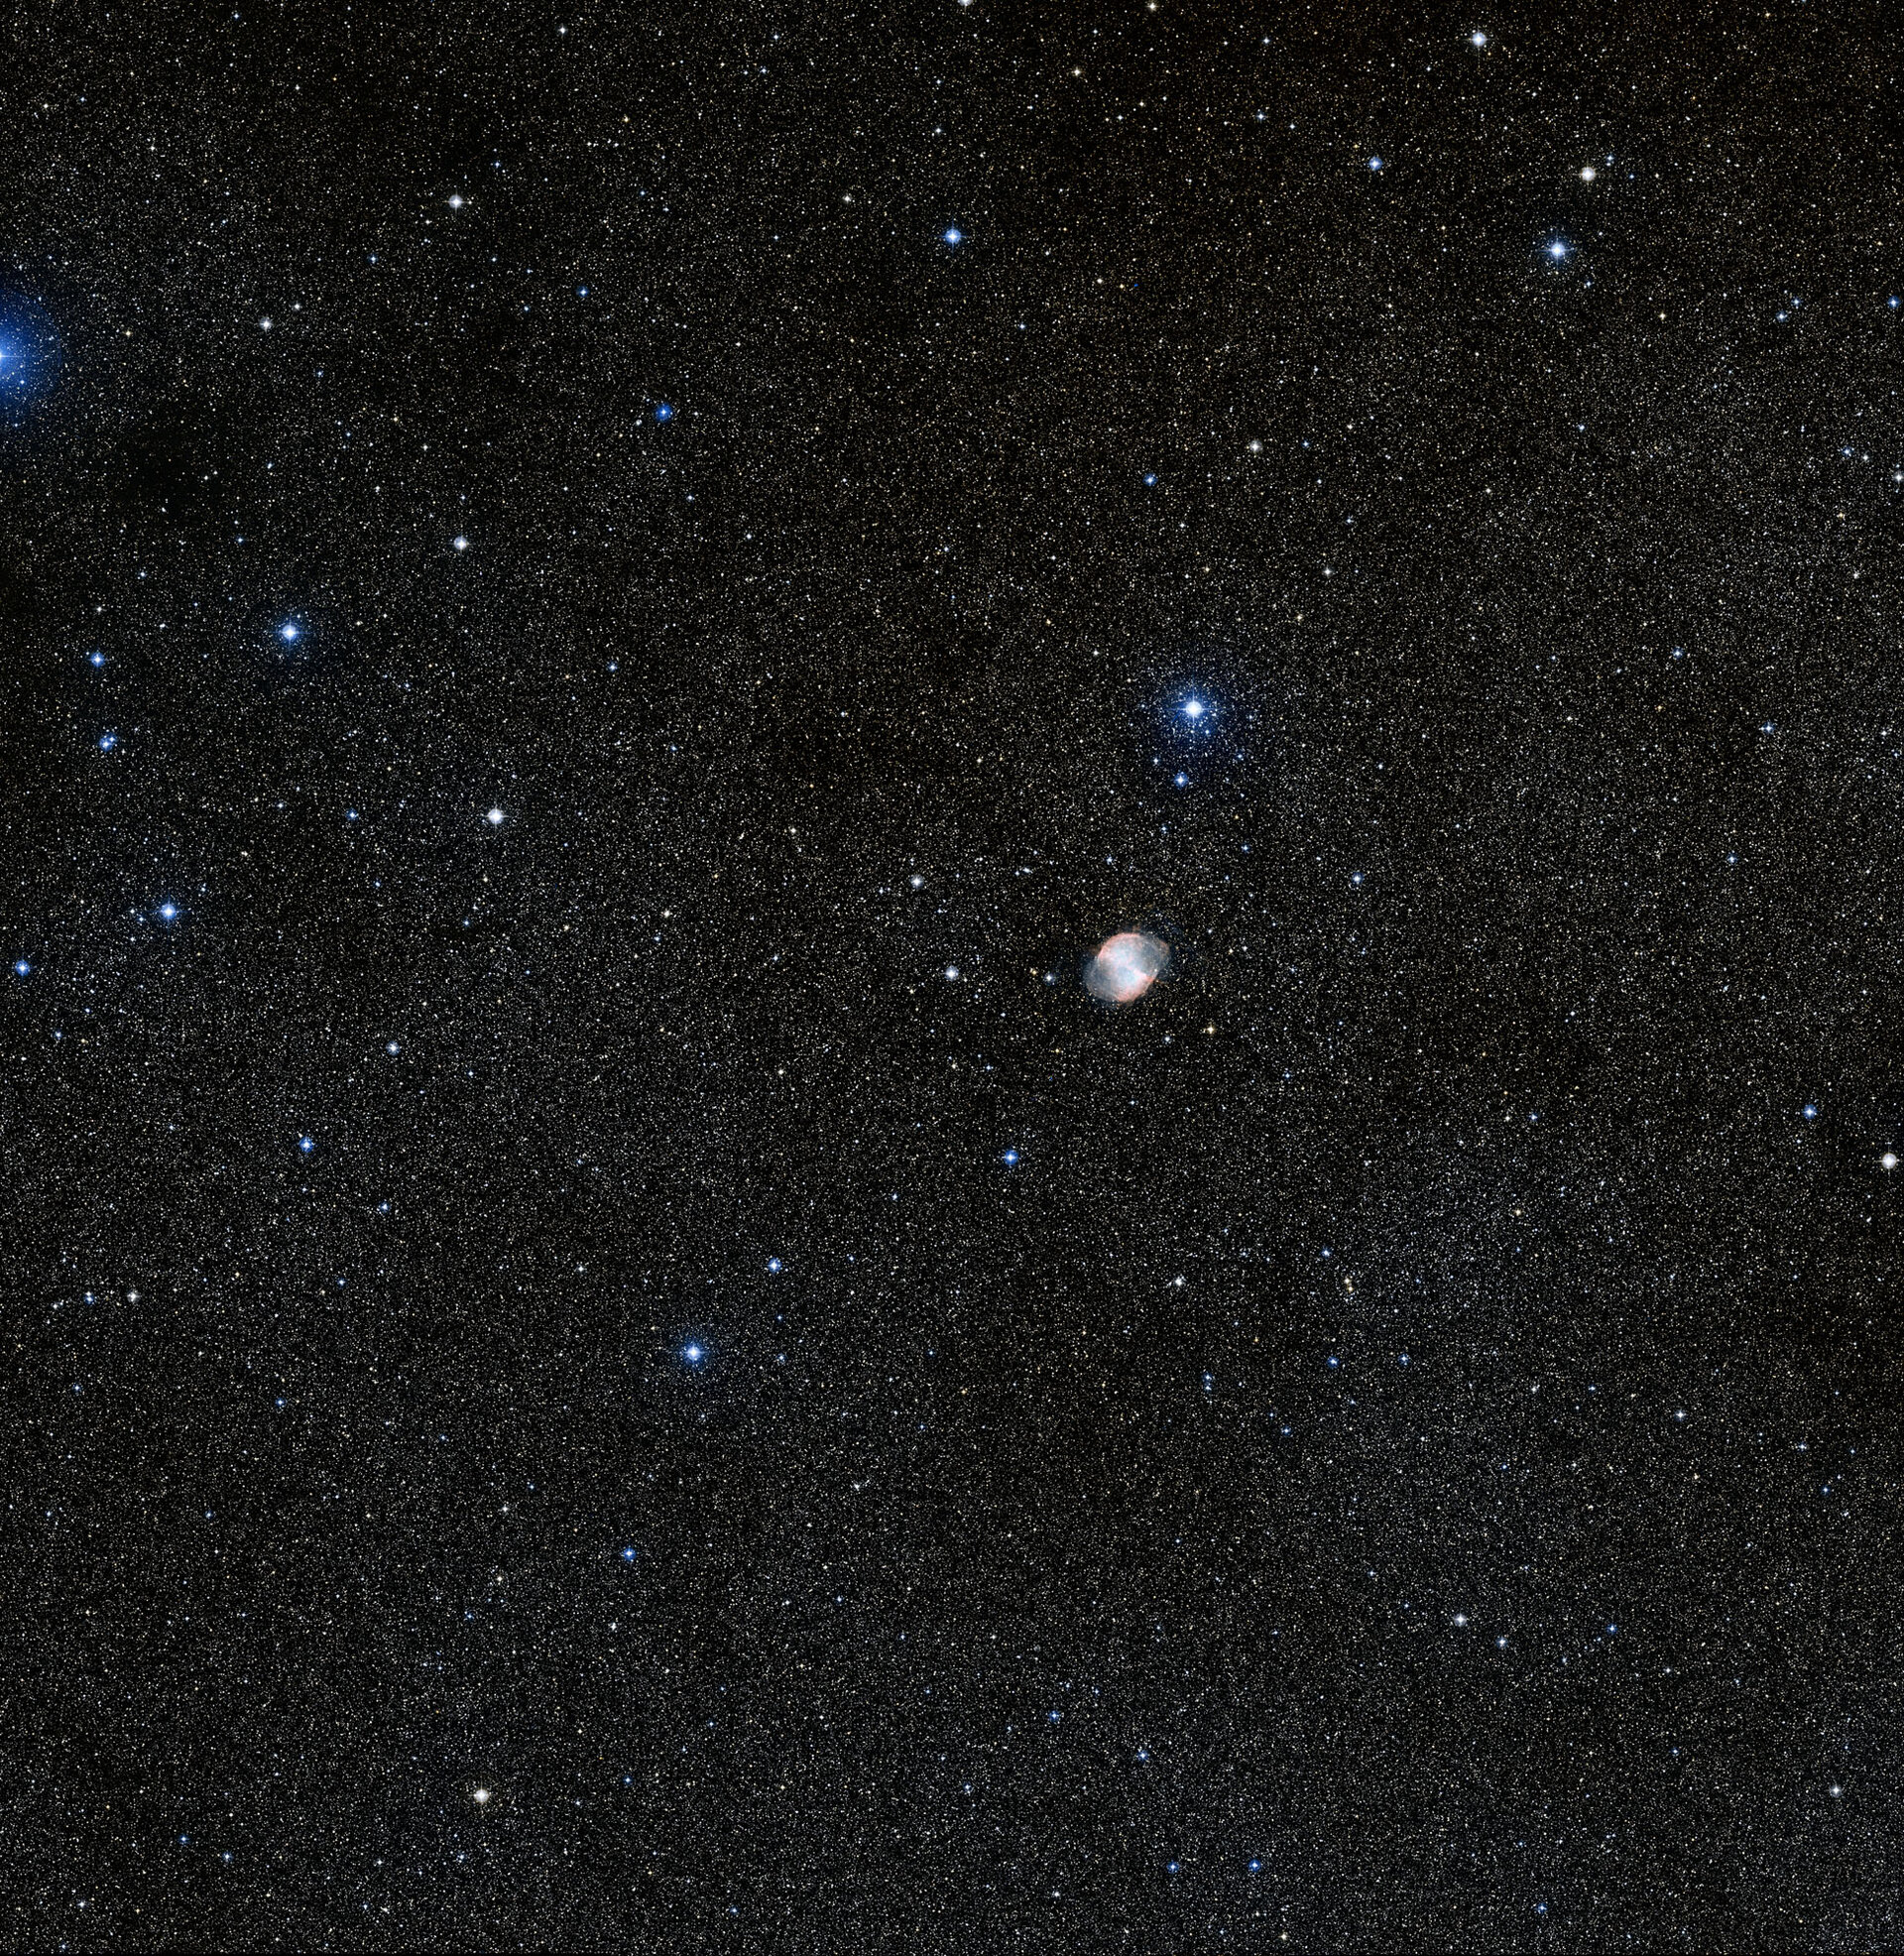 Wide-field view of HD 189733b and surroundings